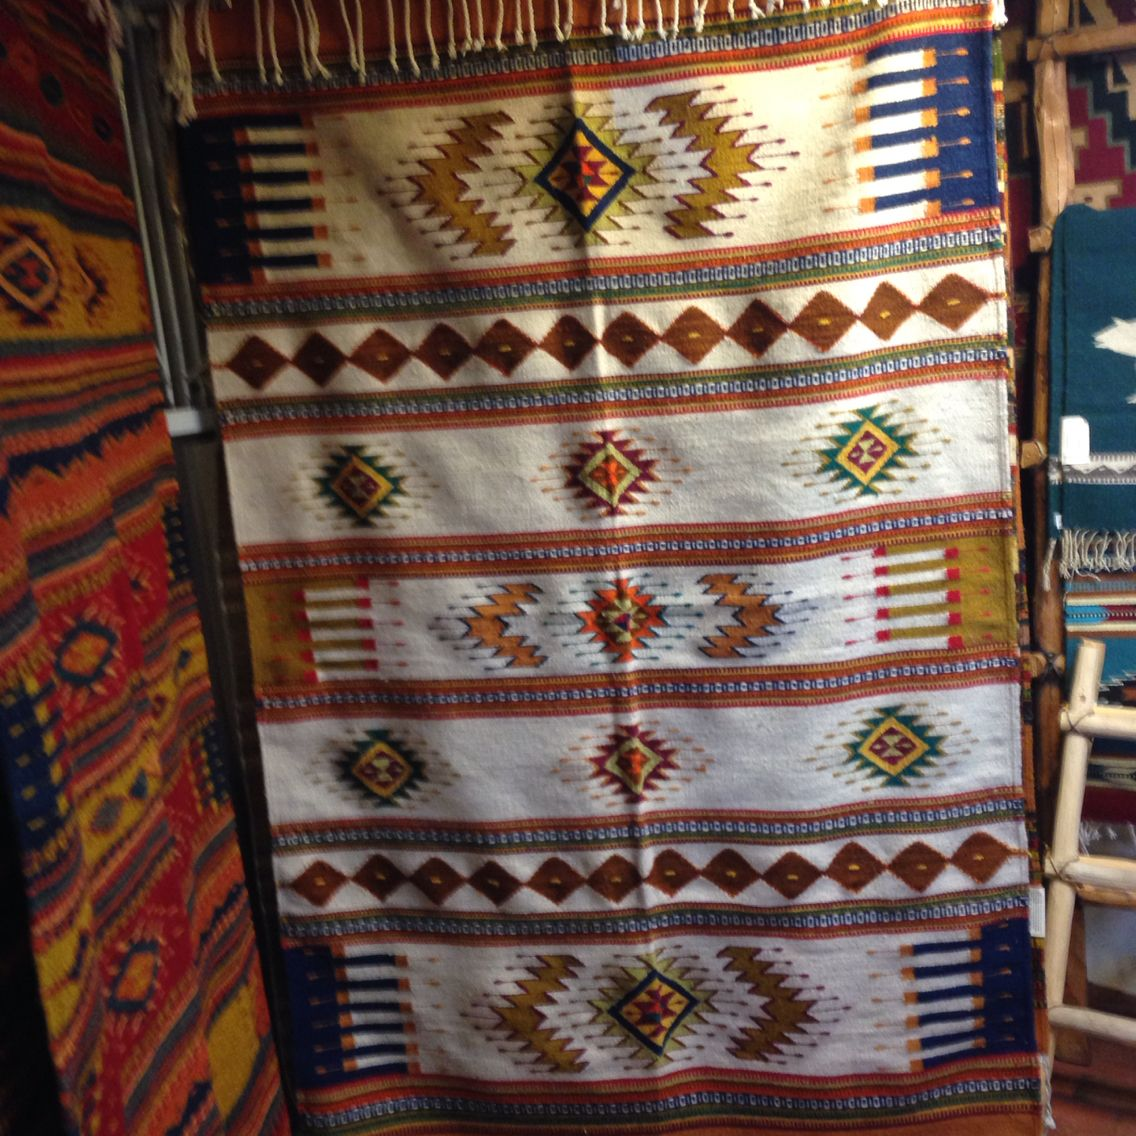 Zapotec Rugs Zapotec Rugs Tucson Museums Rugs